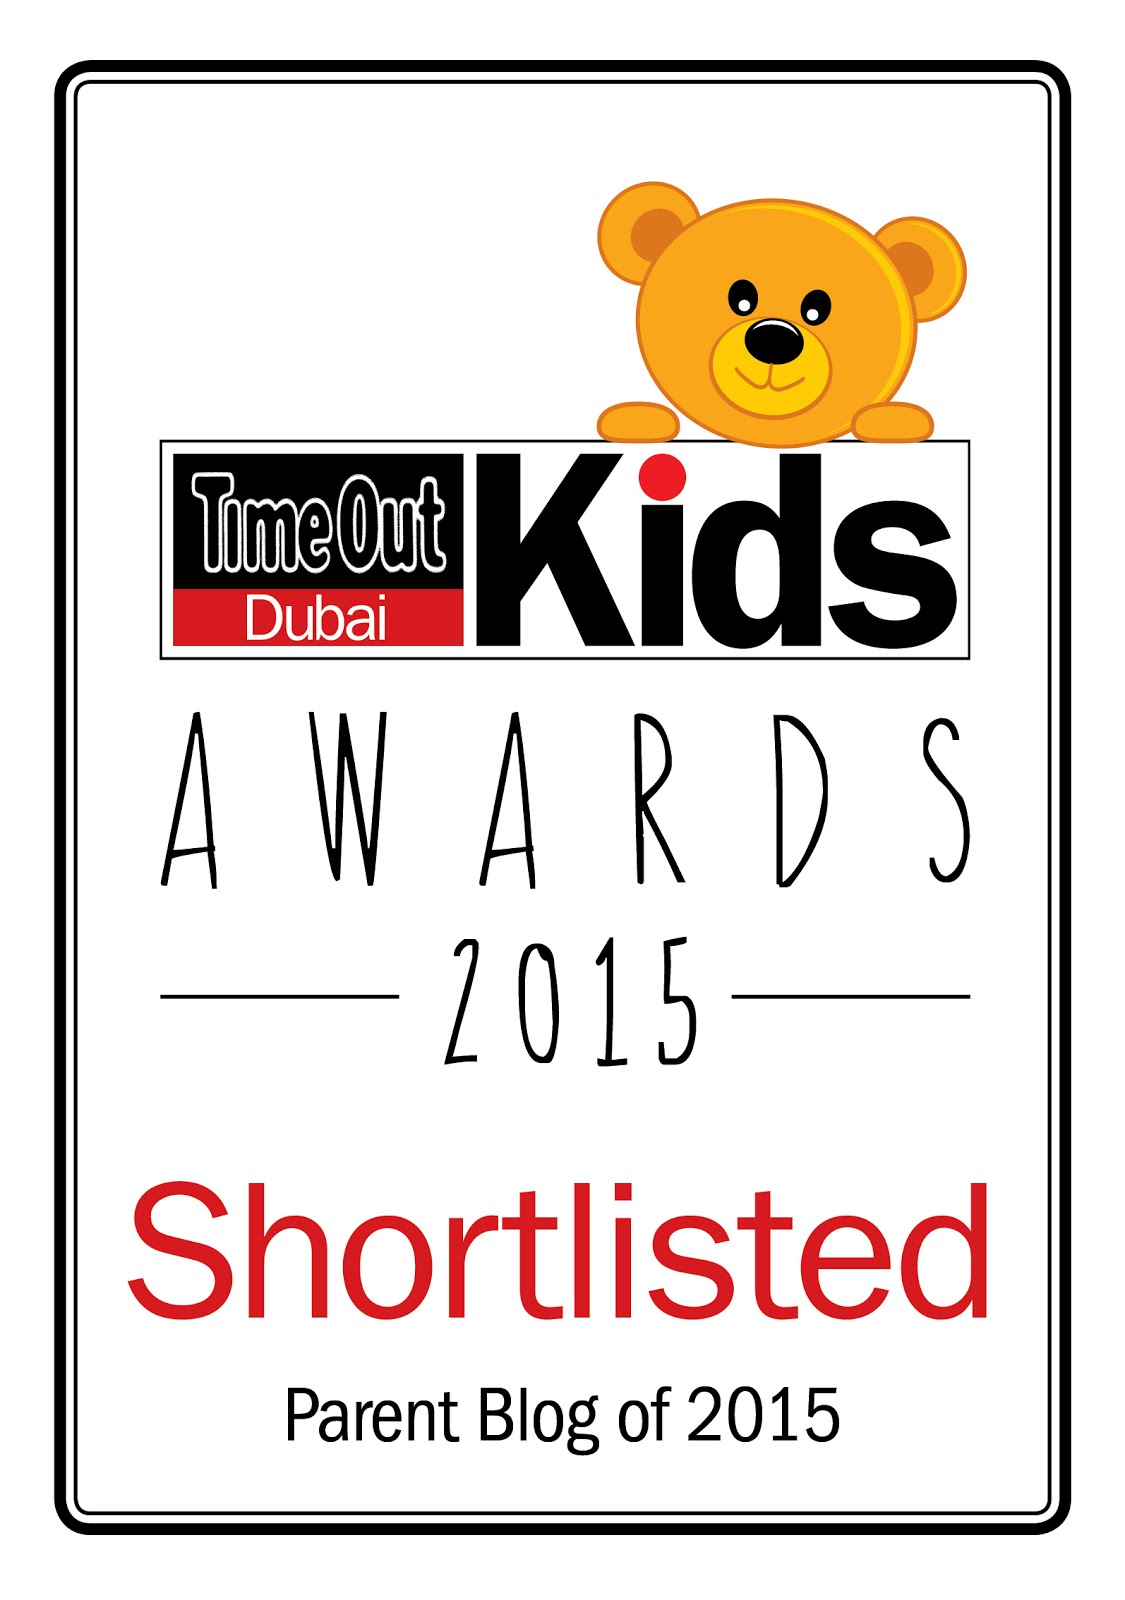 Time Out Dubai Kids Awards 2015